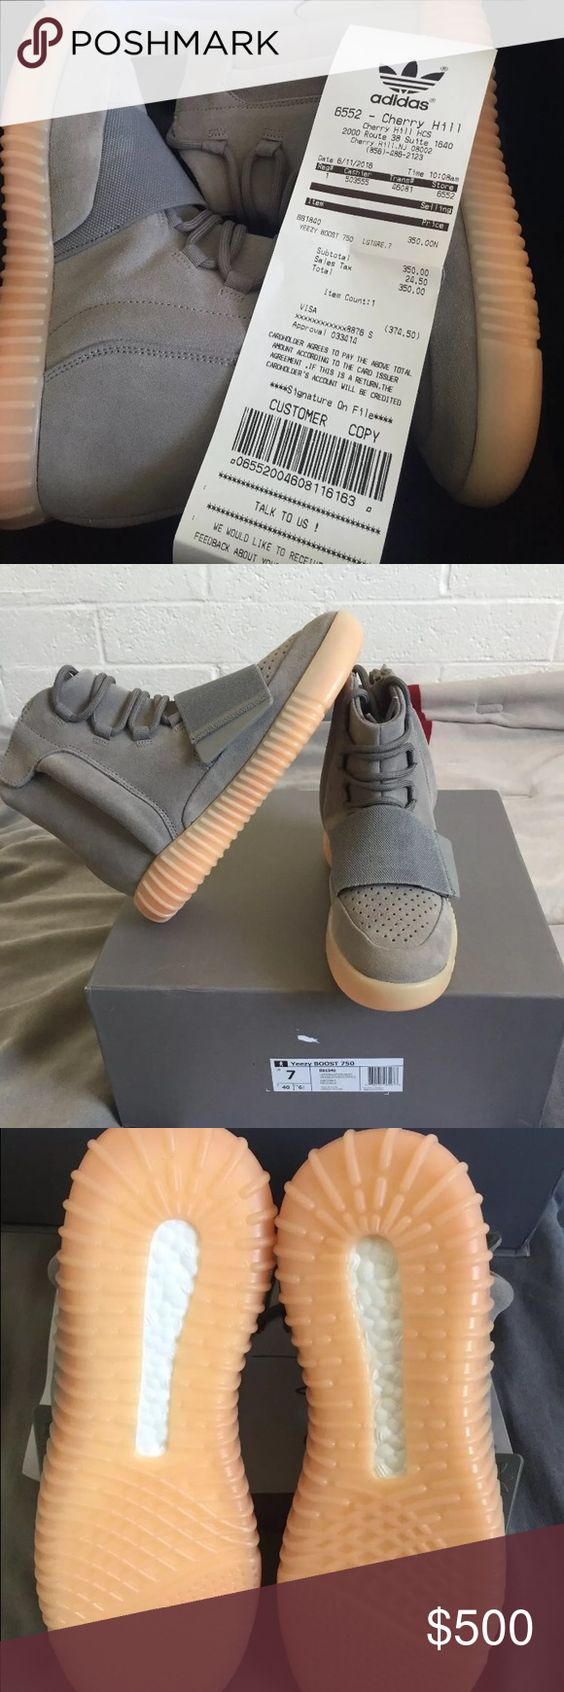 Yeezy Yeezy 750 Yeezy Shoes Sneakers